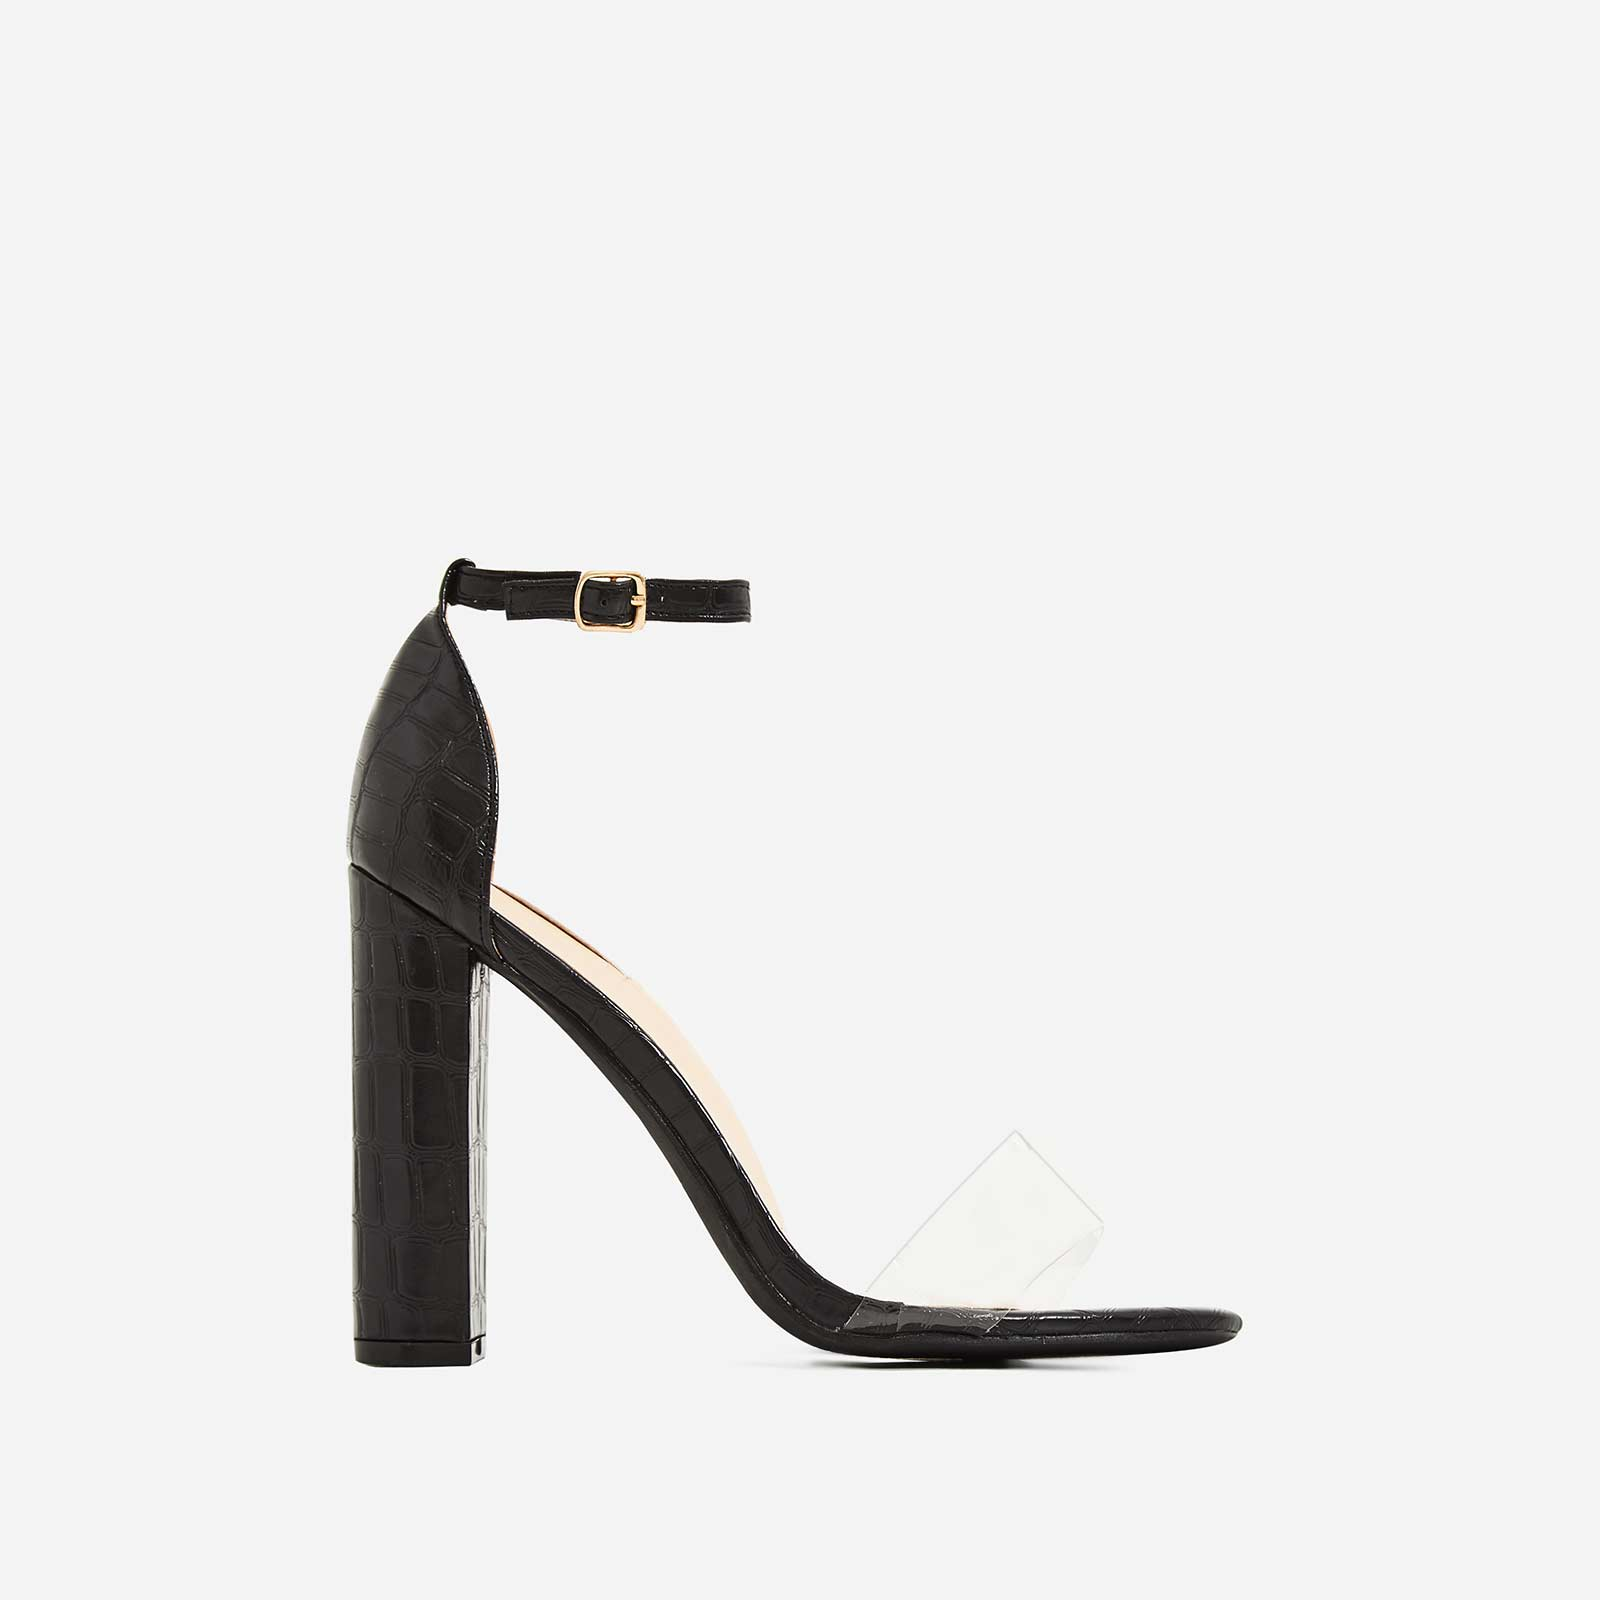 Carmela Block Heel Perspex Heel In Black Croc Print Faux Leather